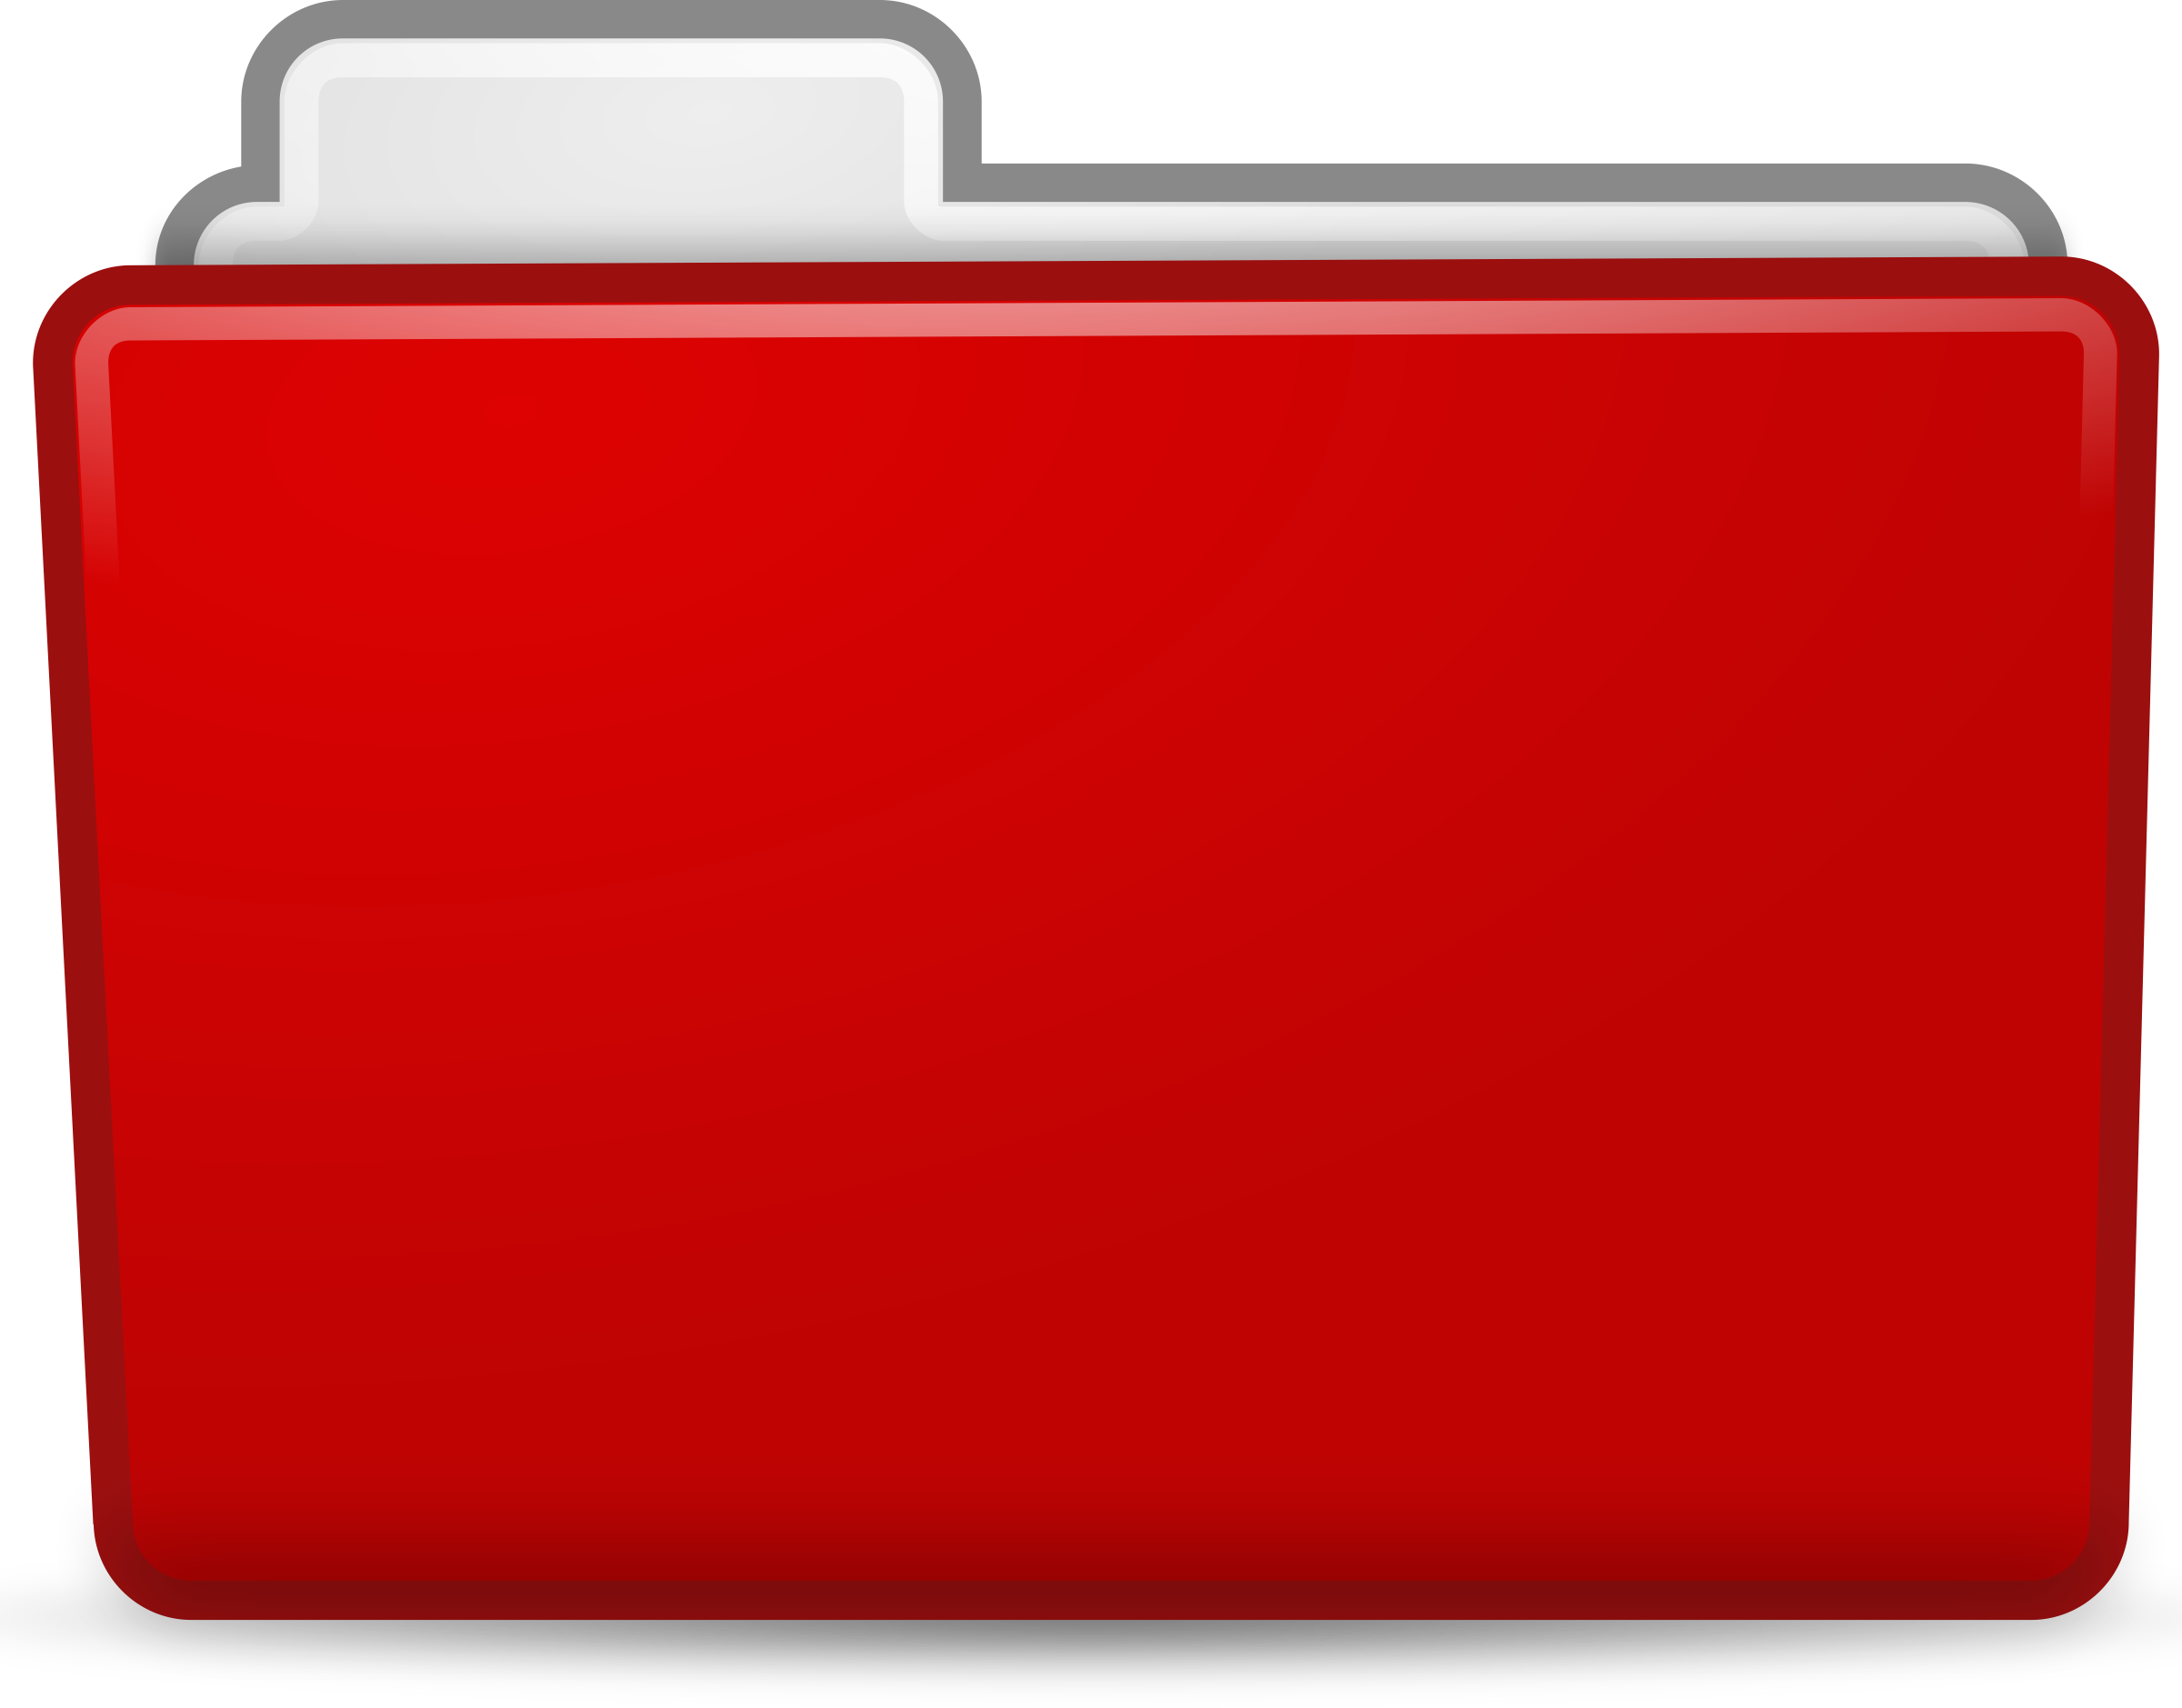 Clipart - Red Folder Icon